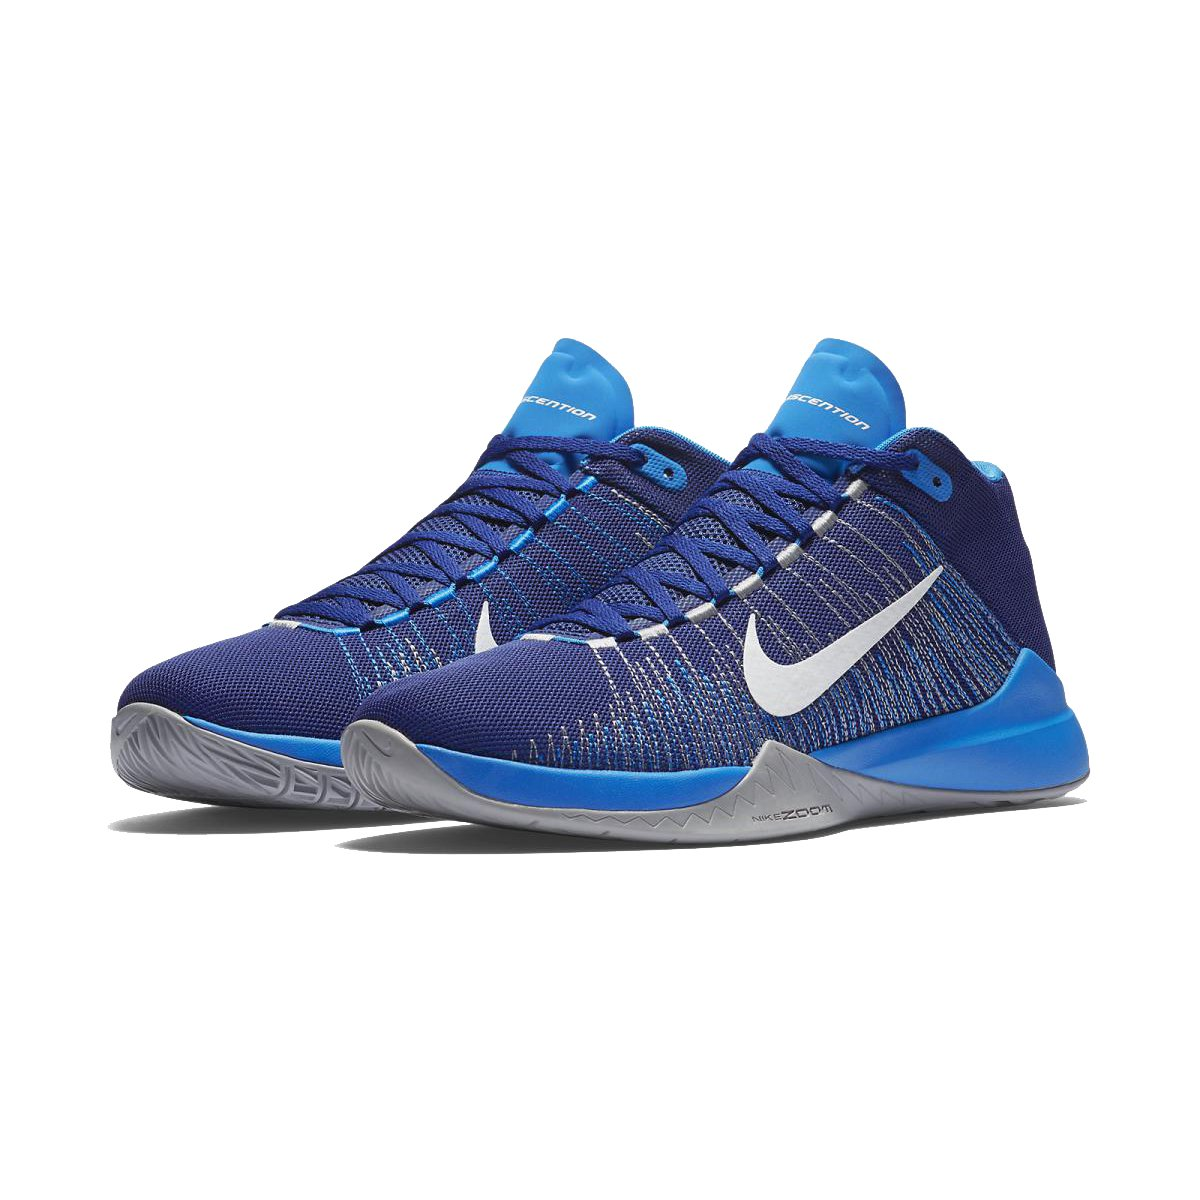 premium selection e5b81 d1d13 Nike Zoom Ascention